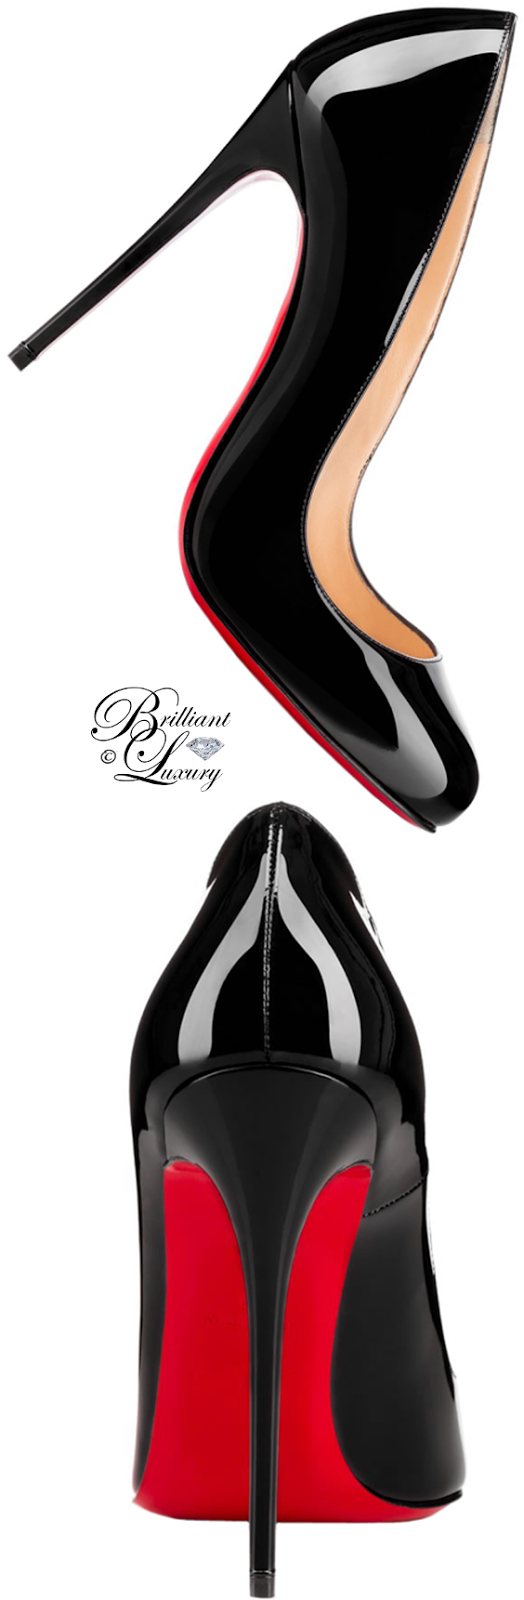 Brilliant Luxury ♦ Christian Louboutin Dorissima Round Toe Red Sole Pump